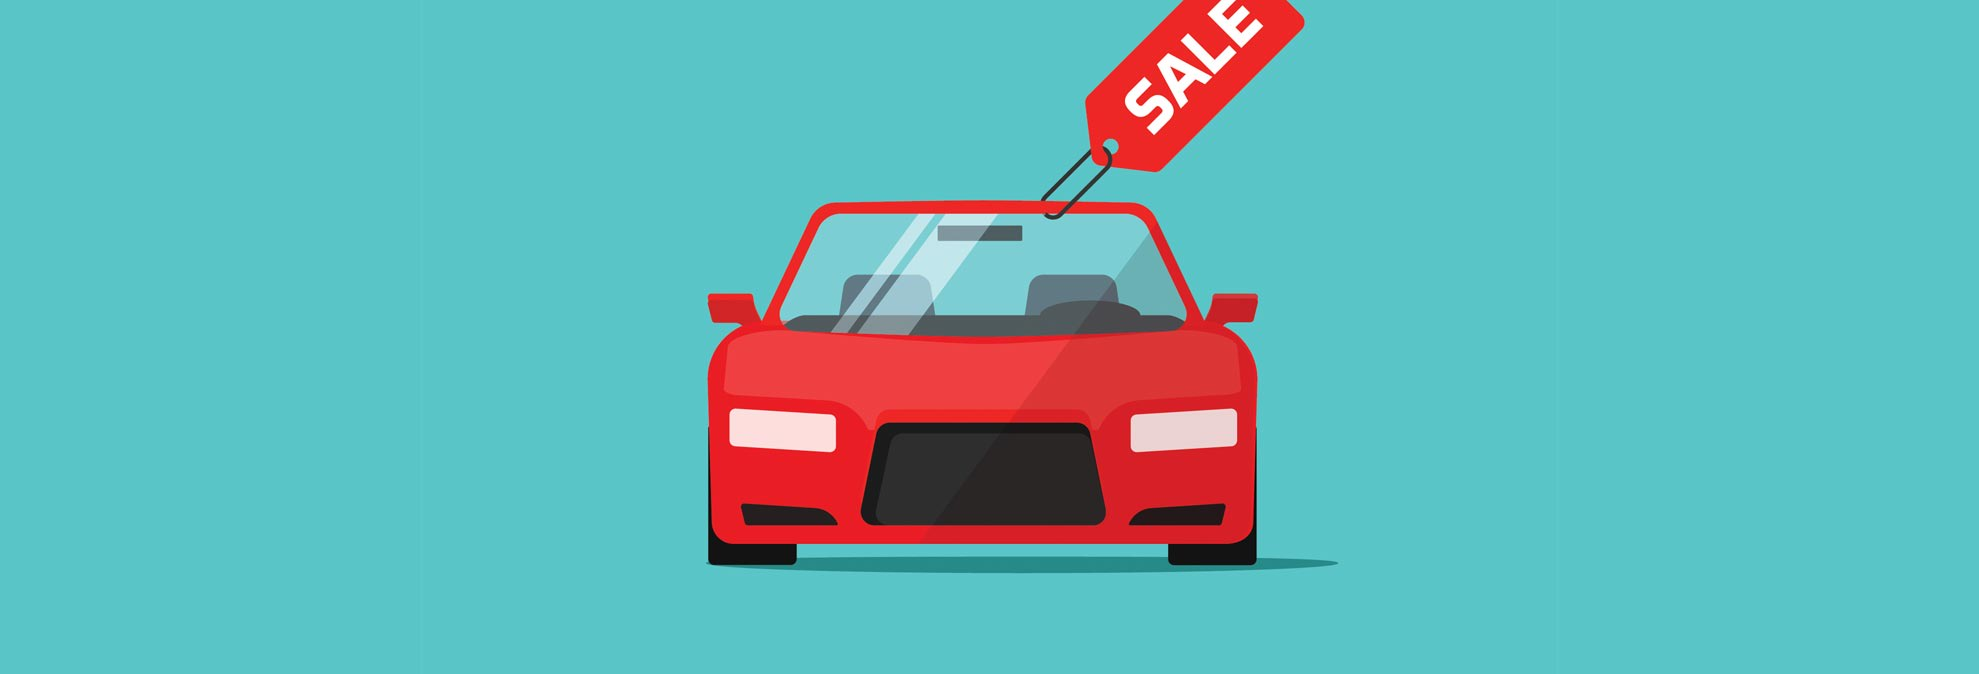 Certified pre owned cars for sale near me